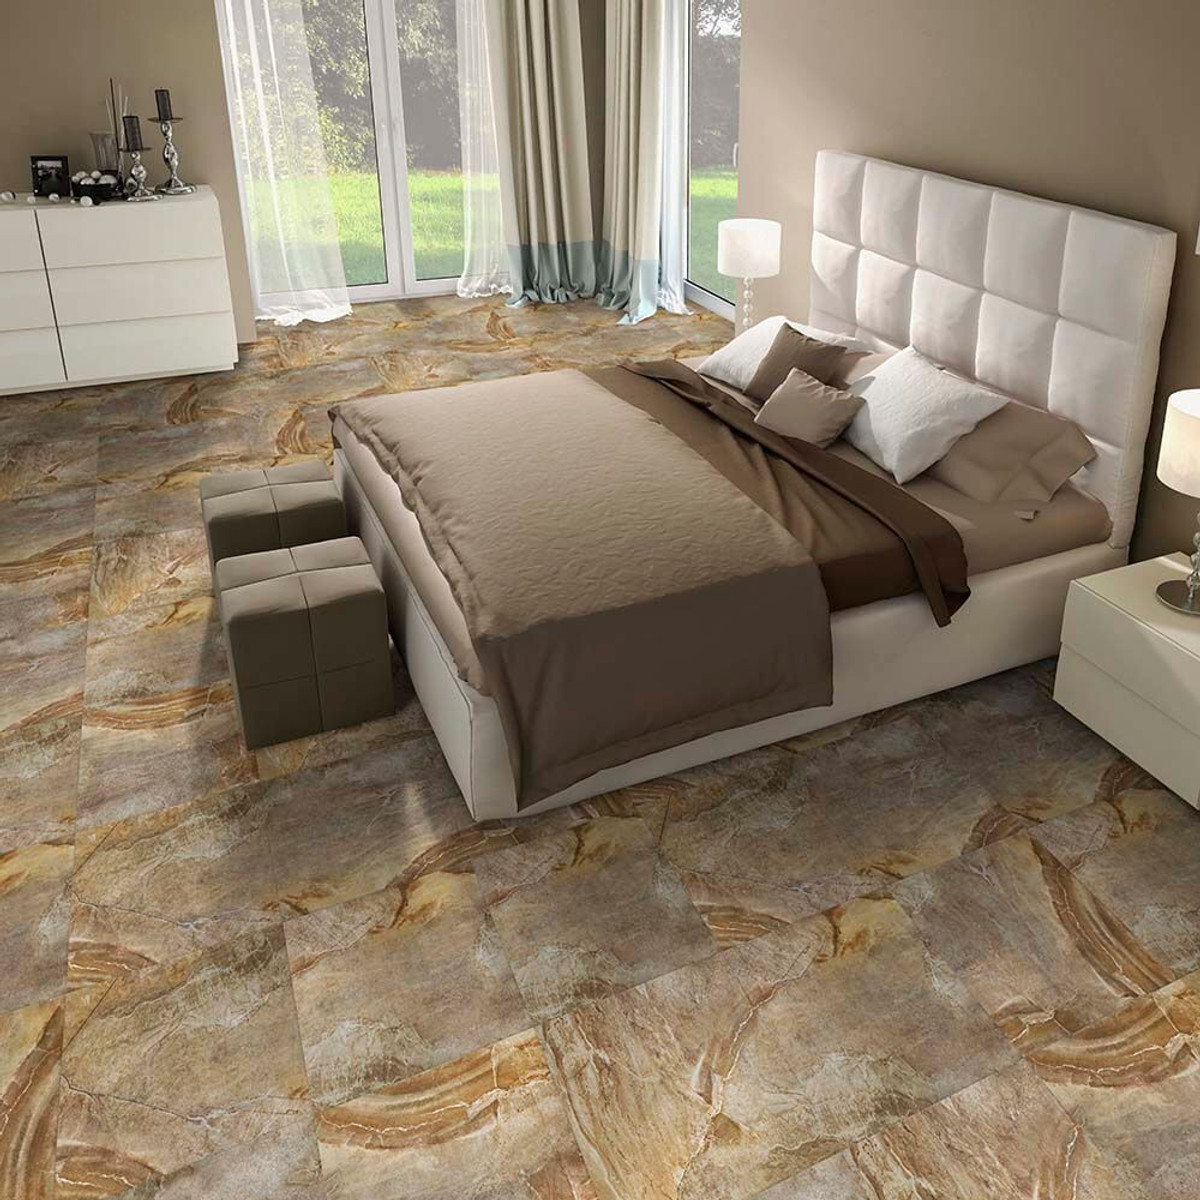 Perfection floor tile natural stone 20 x 20 x 5 mm canyon stone flexi tile natural stone canyon stone perfection floor perfection dailygadgetfo Images